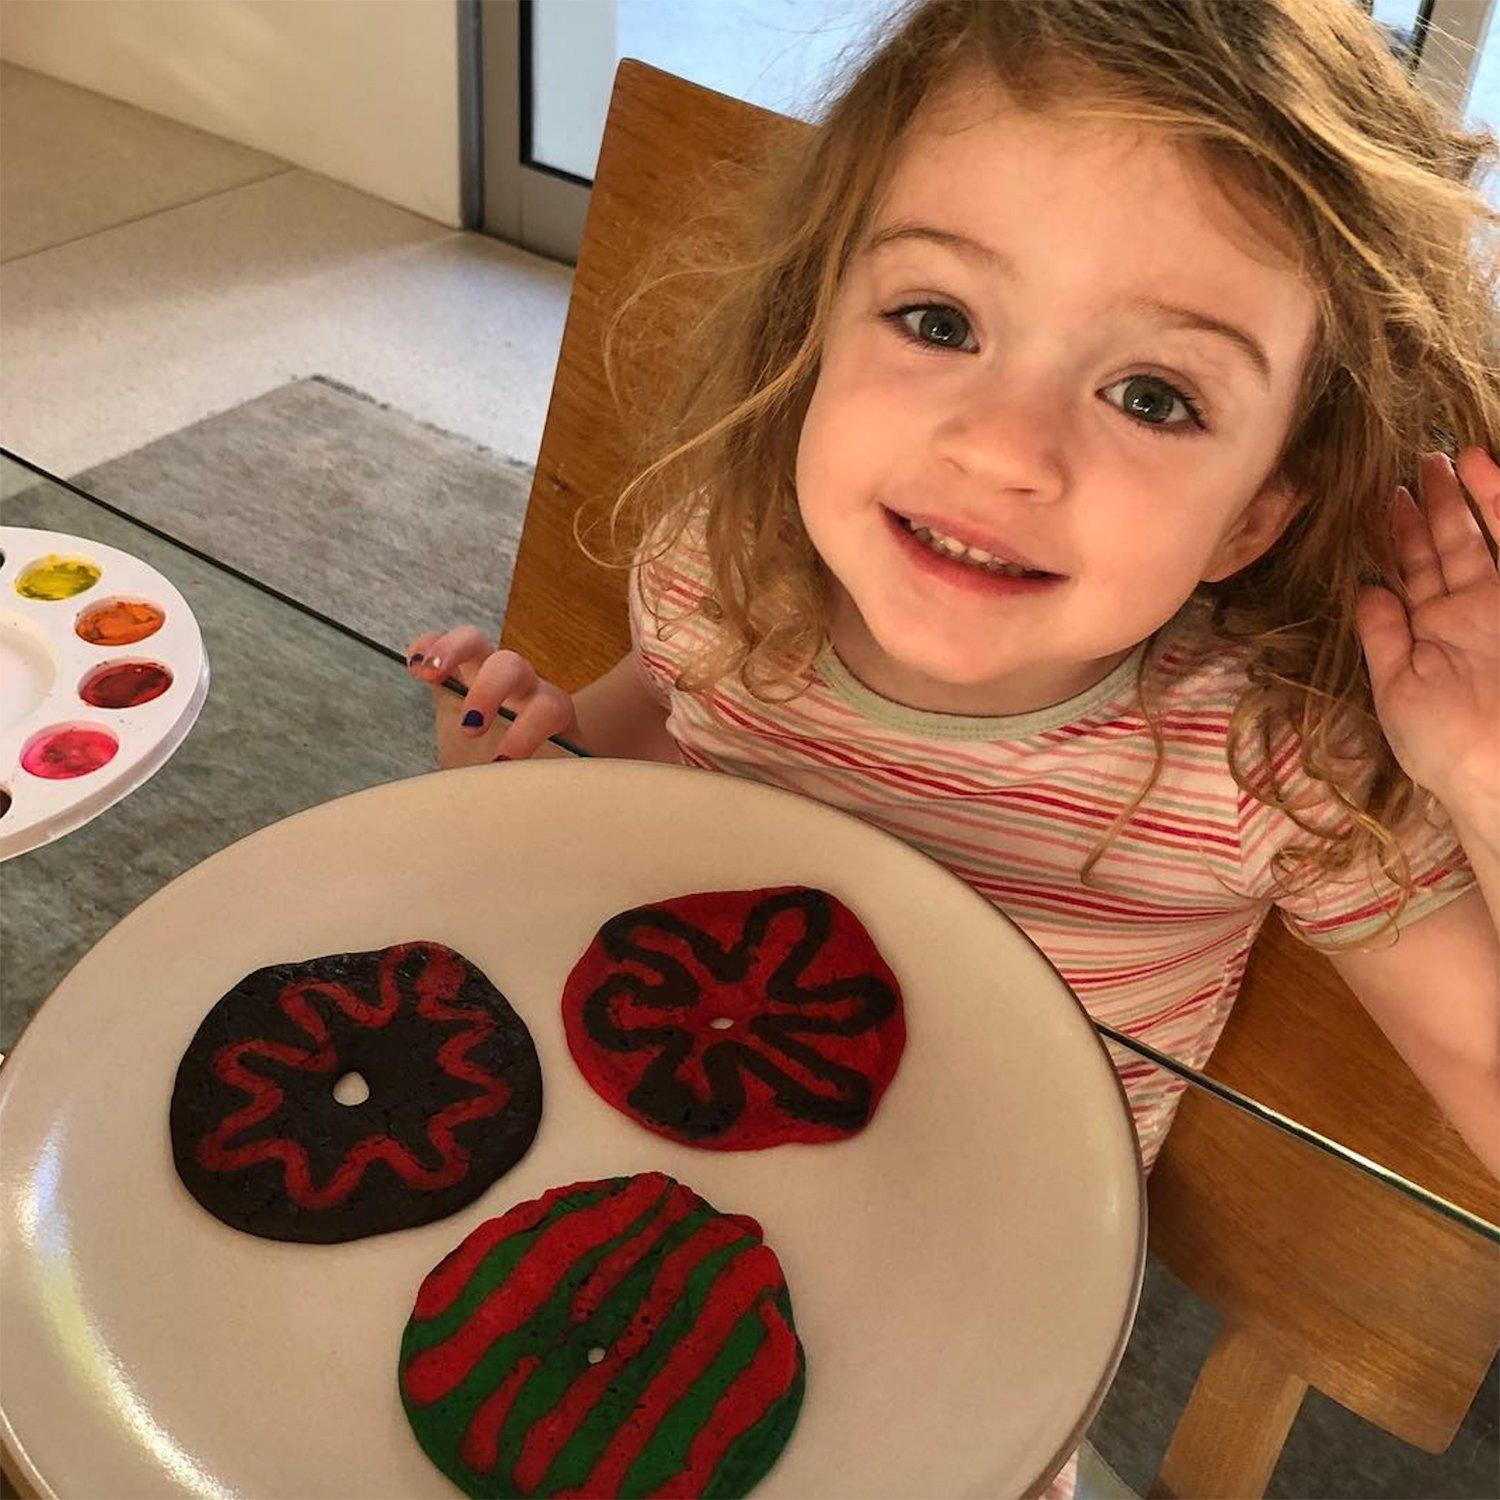 """Jane was all smiles as she prepared to dig into her dad's post-Oscars breakfast masterpiece: pancakes <a href=""""http://people.com/babies/jimmy-kimmel-pancakes-for-daughter-jane/"""" rel=""""nofollow noopener"""" target=""""_blank"""" data-ylk=""""slk:shaped and decorated like donuts"""" class=""""link rapid-noclick-resp"""">shaped and decorated like donuts</a>. """"When your 3 yr old wakes up at 6:56 am the morning after <a href=""""https://www.instagram.com/explore/tags/oscars/"""" rel=""""nofollow noopener"""" target=""""_blank"""" data-ylk=""""slk:#Oscars"""" class=""""link rapid-noclick-resp"""">#Oscars</a>, <a href=""""https://www.instagram.com/explore/tags/pancakes/"""" rel=""""nofollow noopener"""" target=""""_blank"""" data-ylk=""""slk:#pancakes"""" class=""""link rapid-noclick-resp"""">#pancakes</a> disguised as <a href=""""https://www.instagram.com/explore/tags/donuts/"""" rel=""""nofollow noopener"""" target=""""_blank"""" data-ylk=""""slk:#donuts"""" class=""""link rapid-noclick-resp"""">#donuts</a>,"""" wrote the late-night personality — who hosted last year's show — next to <a href=""""https://www.instagram.com/p/Bf8mejJH4G9/"""" rel=""""nofollow noopener"""" target=""""_blank"""" data-ylk=""""slk:the cute photo"""" class=""""link rapid-noclick-resp"""">the cute photo</a>."""